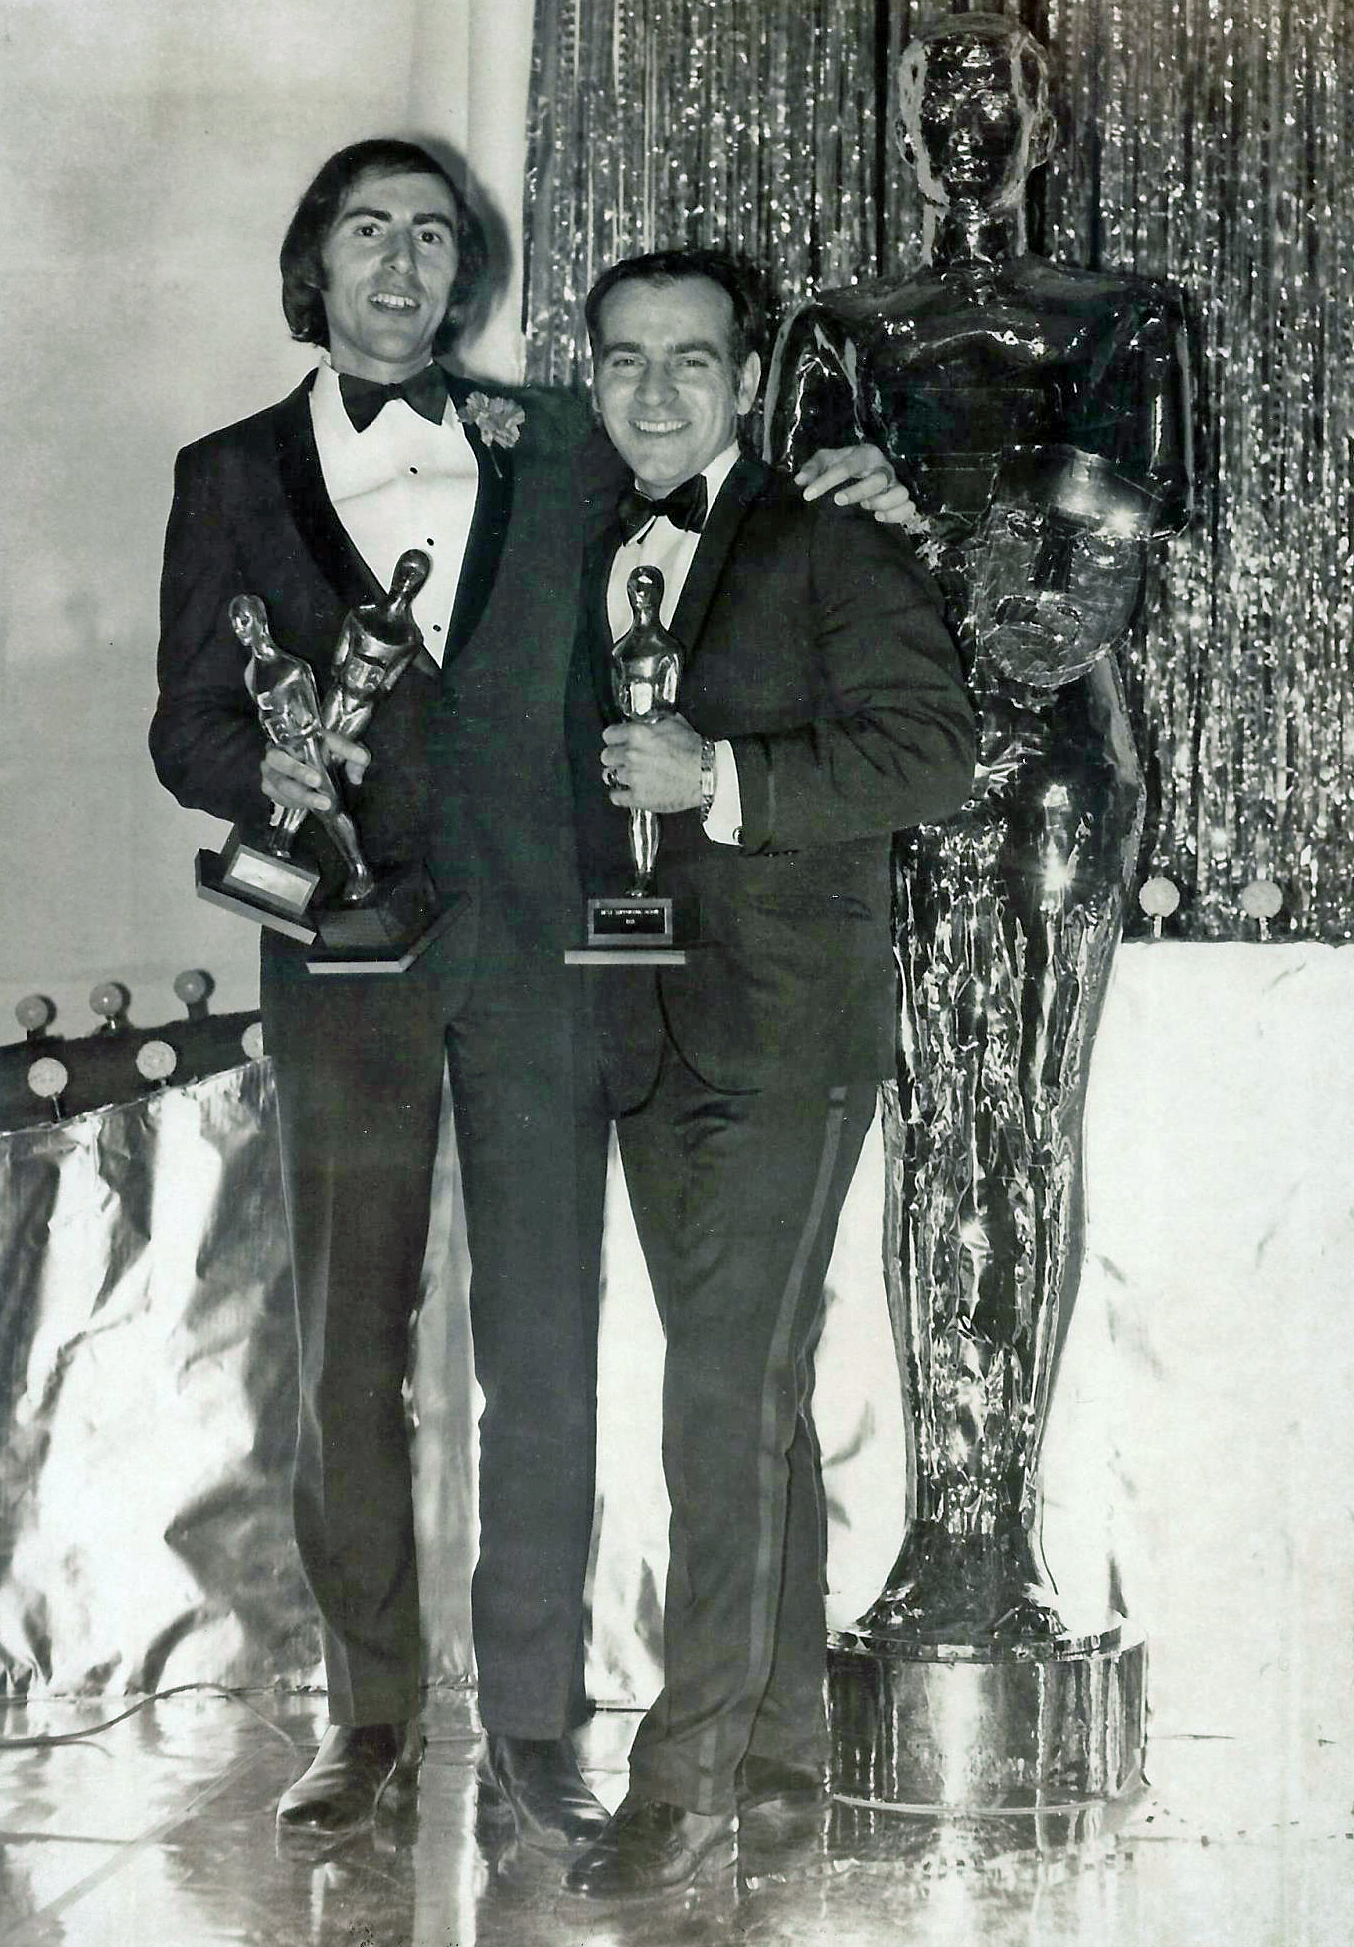 Denis and Ray - 1971